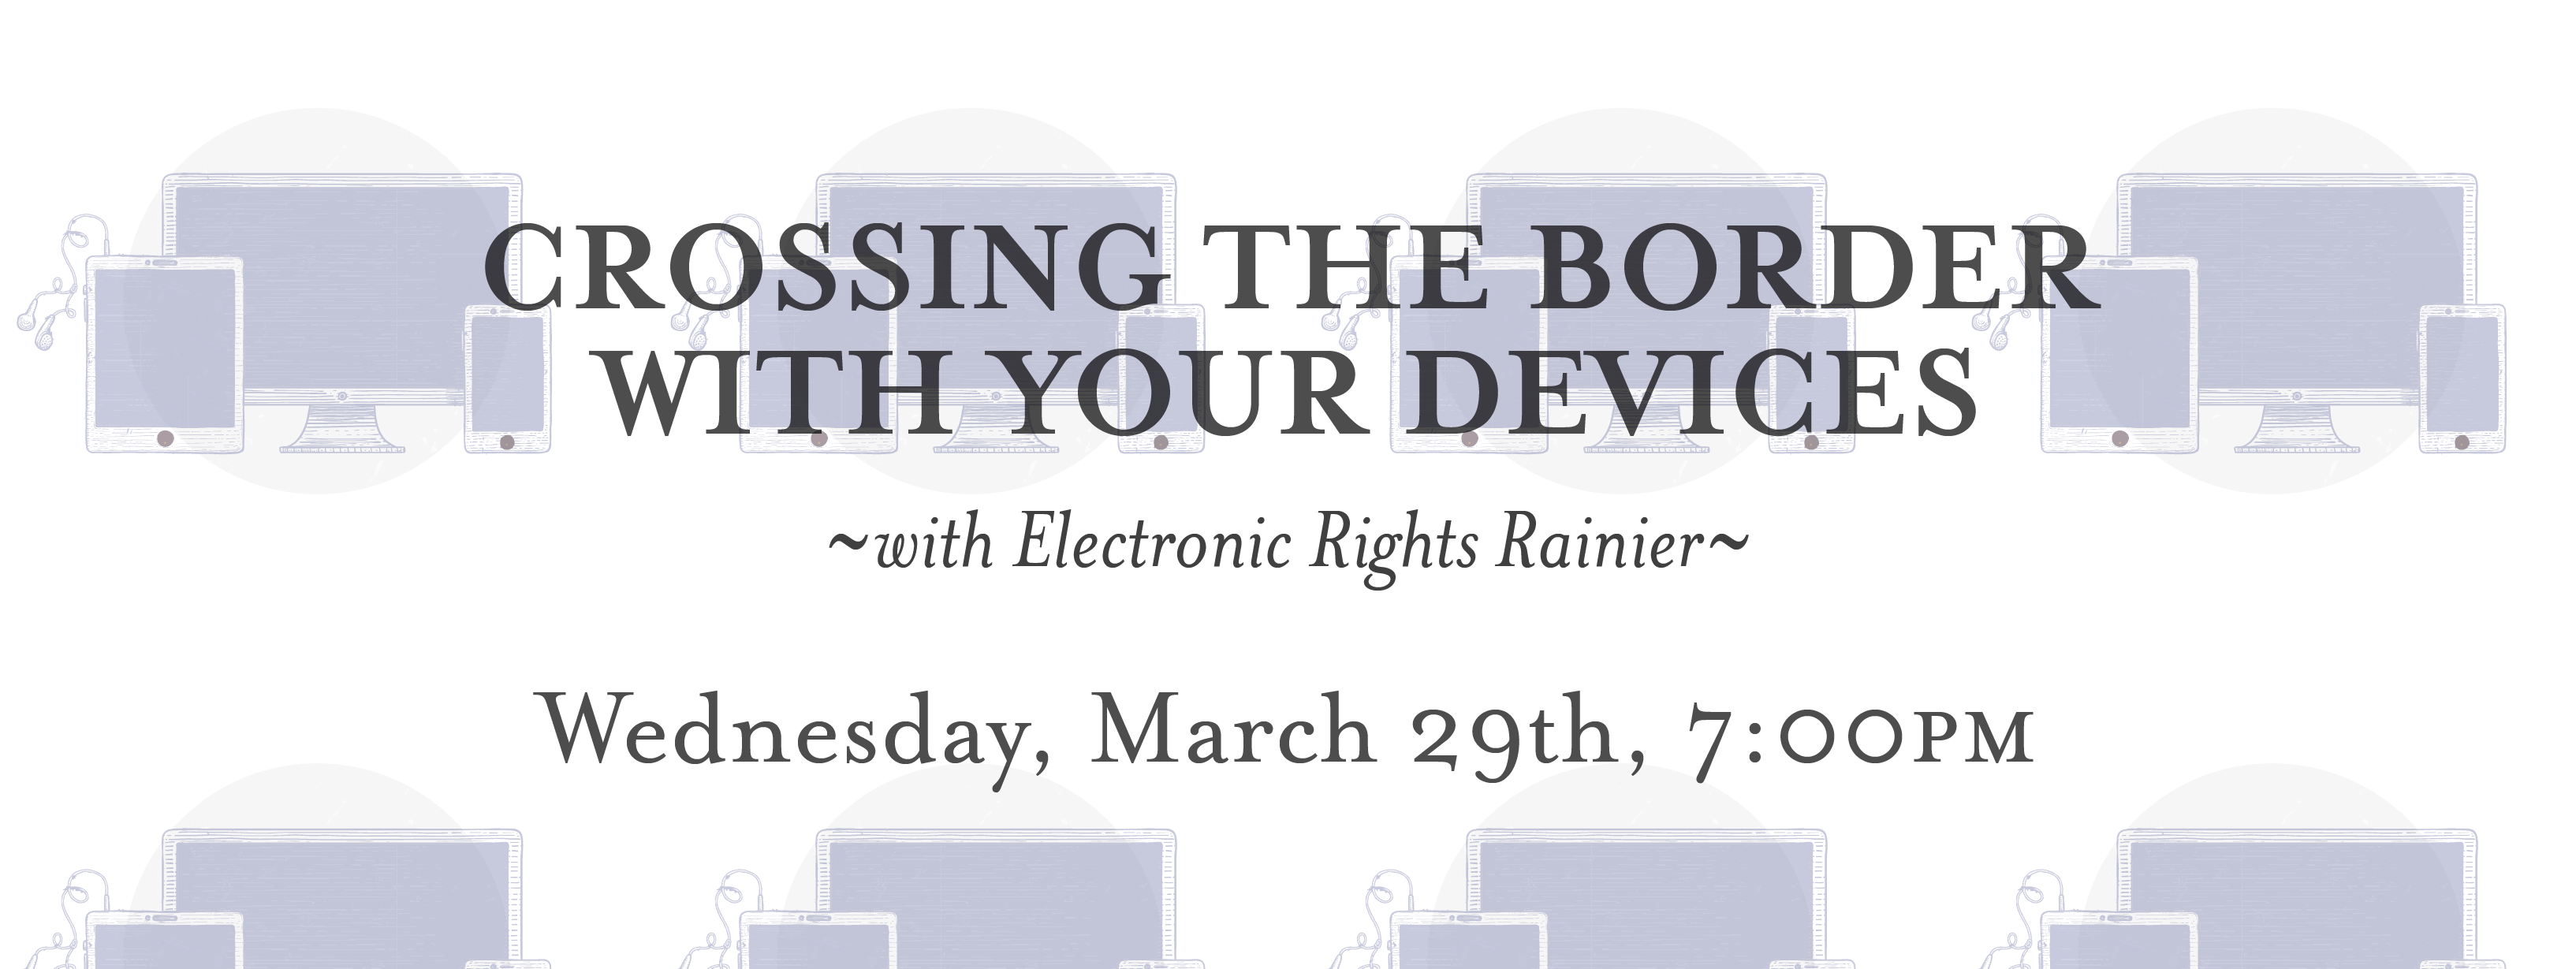 Adas featured events adas technical books join electronic rights rainier for a roundtable discussion of privacy and security while crossing the border with your devices well talk about technical fandeluxe Gallery